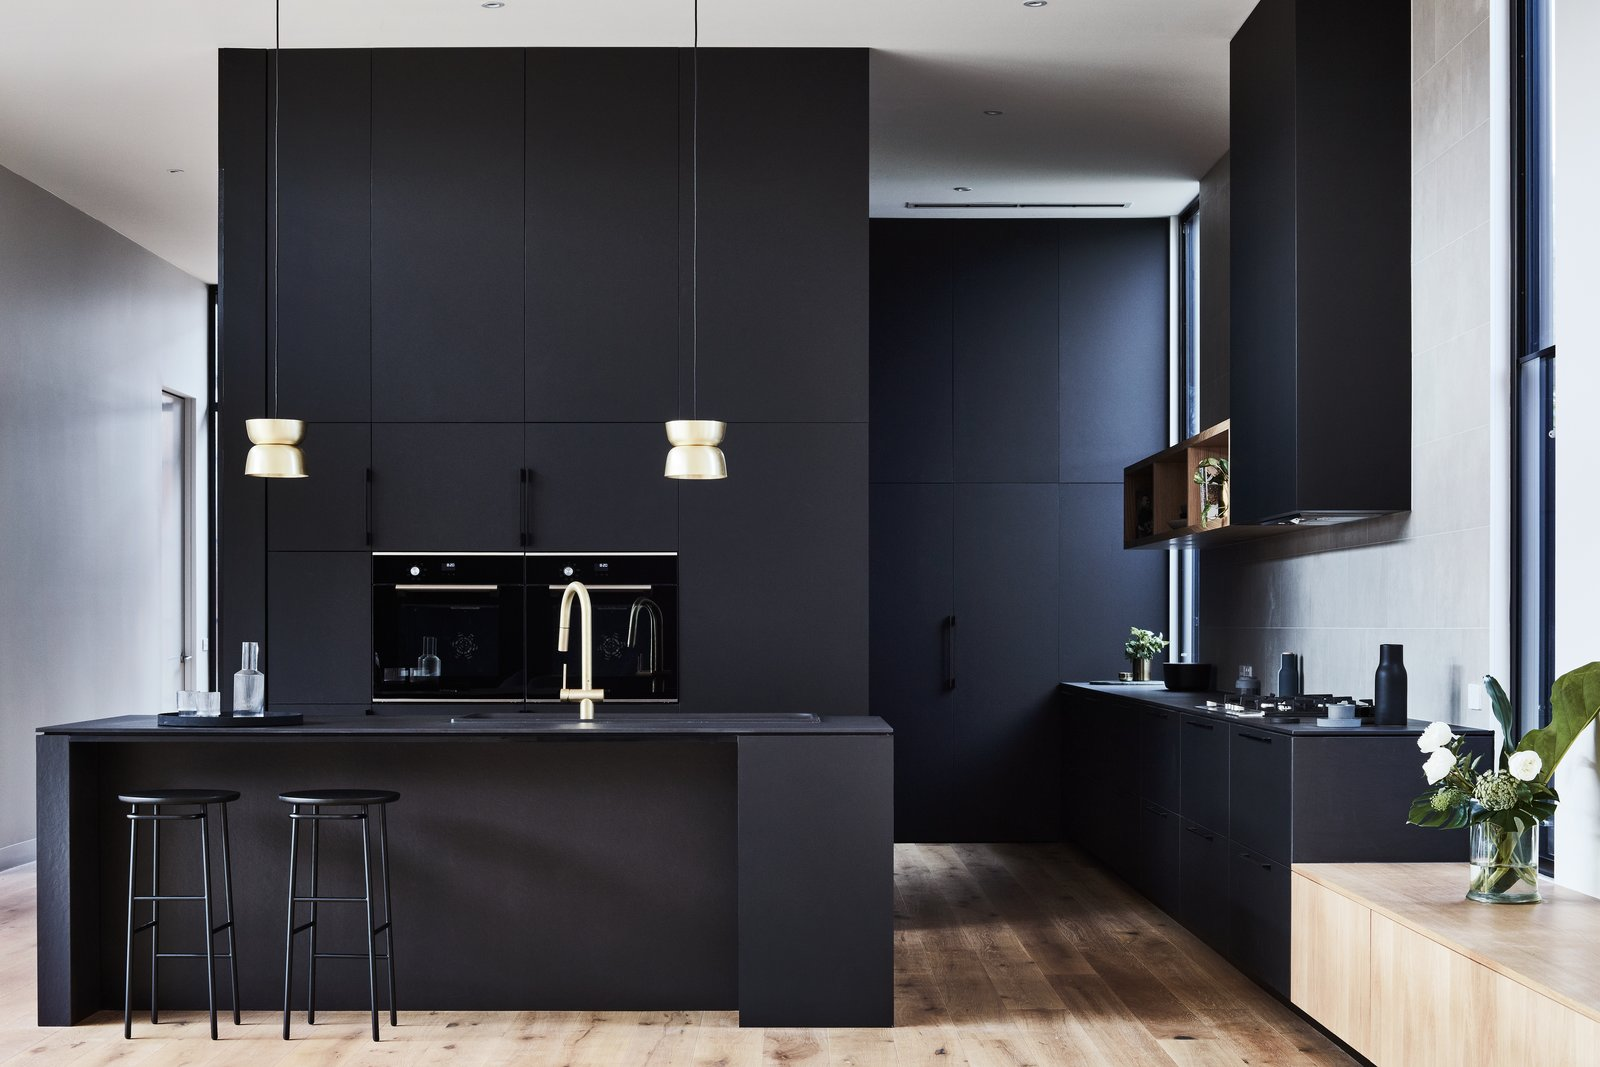 The sleek black kitchen is fitted with oak timber floors and brass accents to infuse additional sophistication into the space.